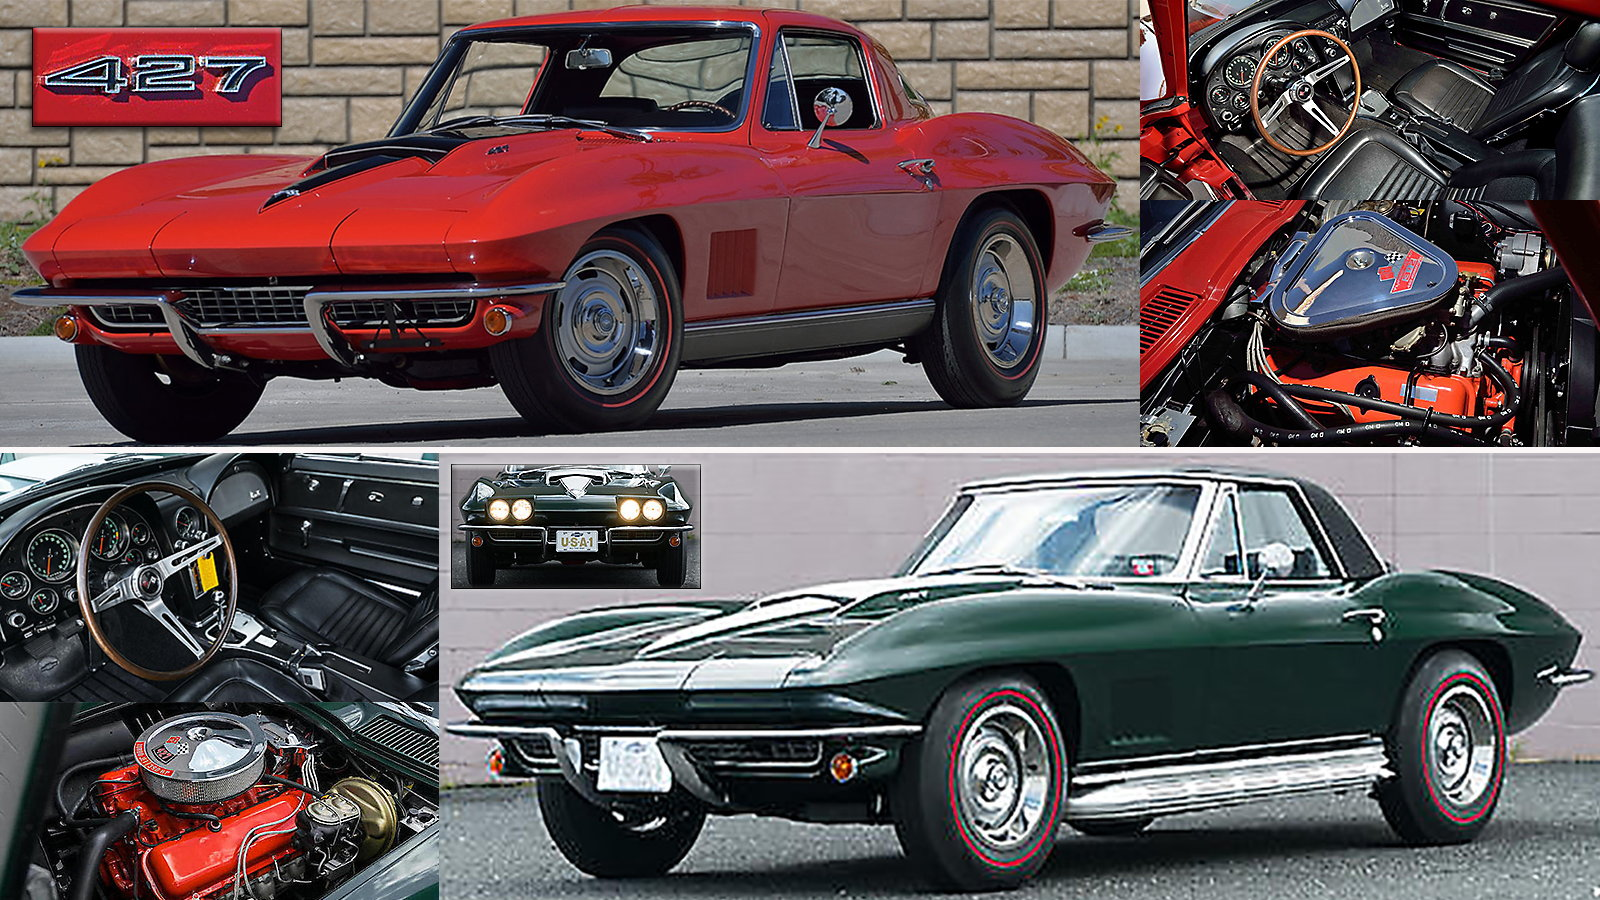 Mecum Auctions Lot S67, and Bonhams Auctions Lot 506, Monterey 2017 sales